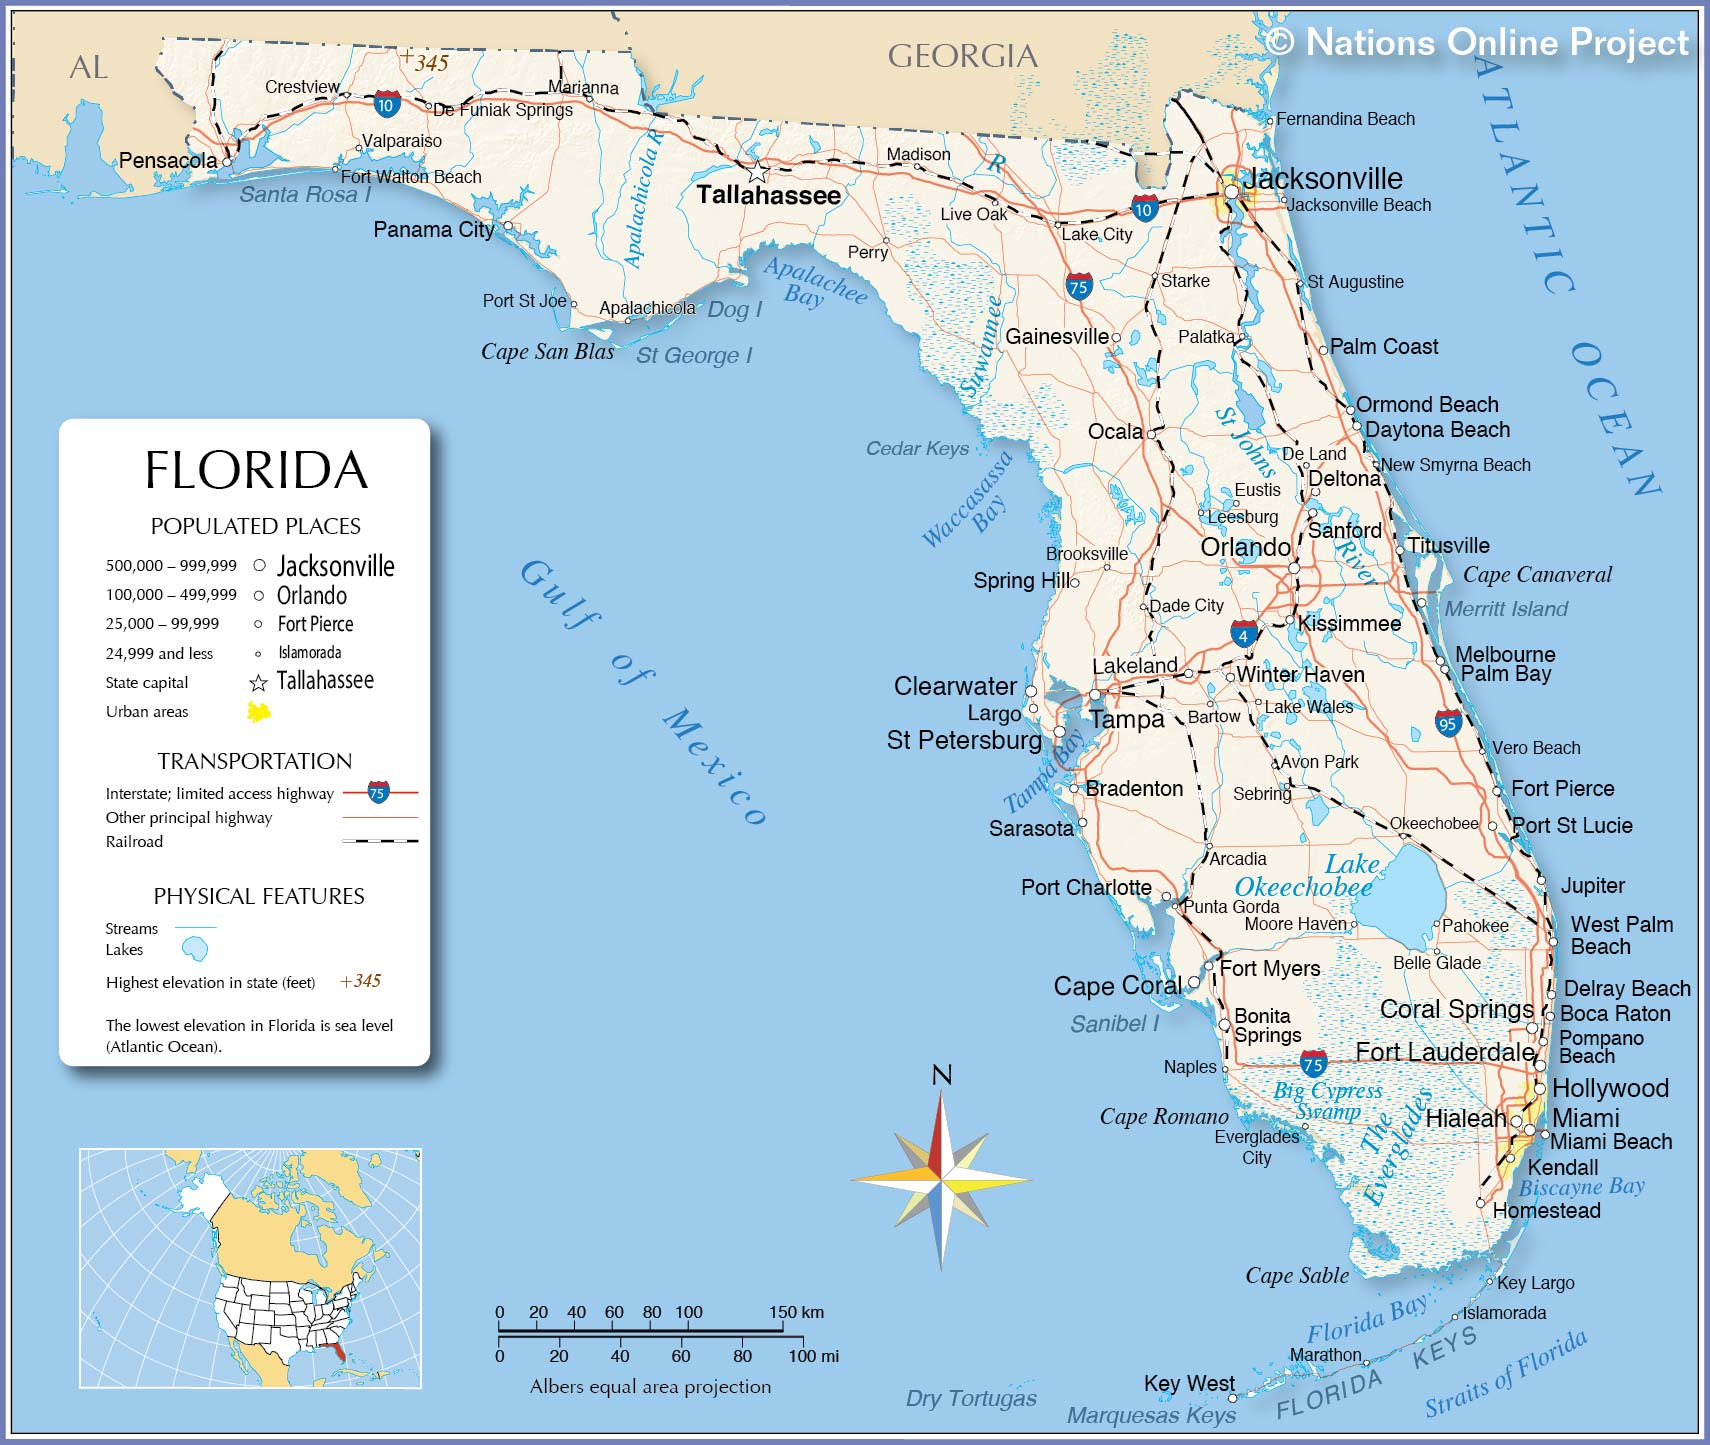 Reference Maps Of Florida, Usa - Nations Online Project - Coral Bay Florida Map